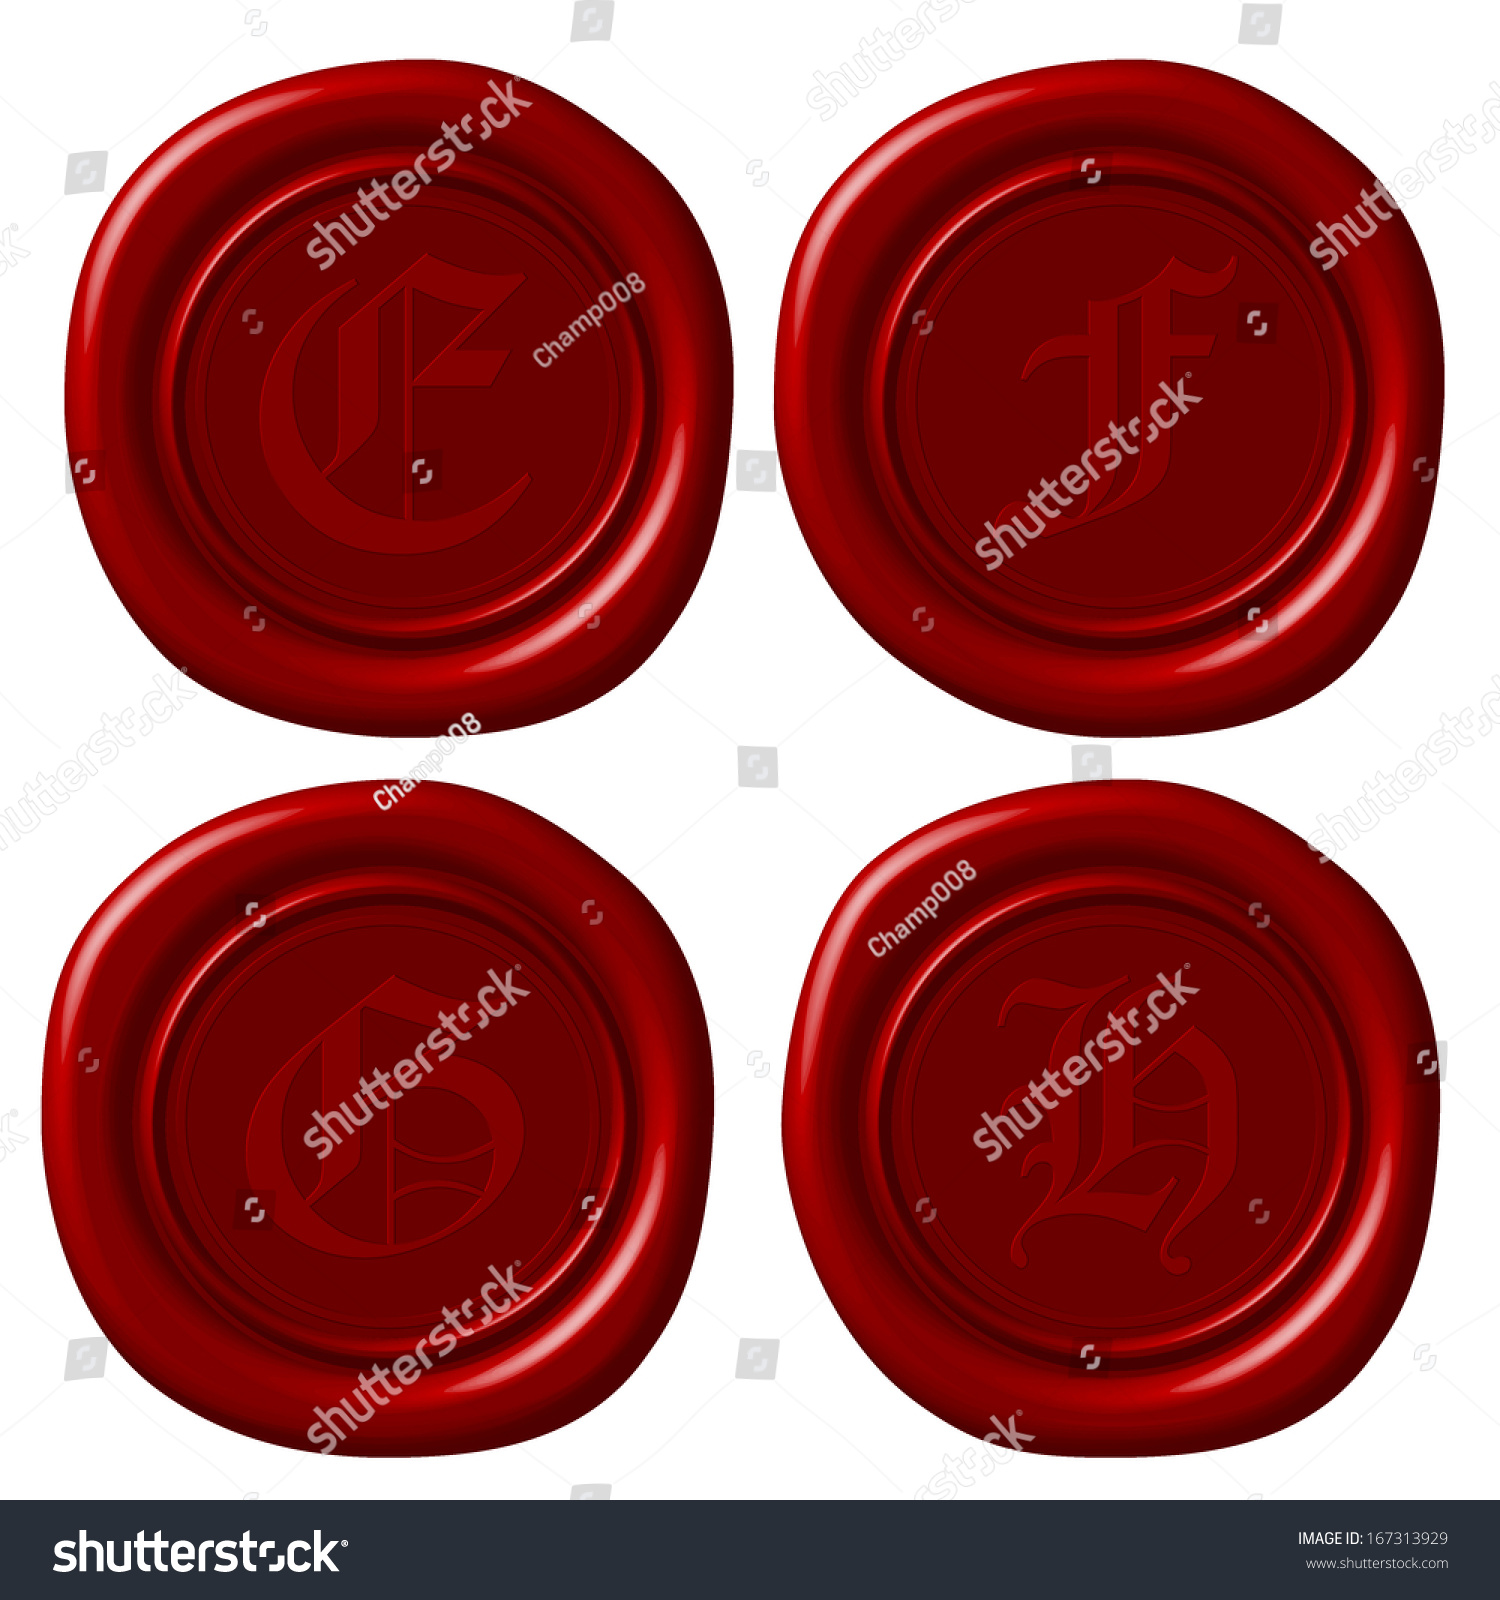 Vector Of Old English Alphabet Abcd Letters On Sealing Wax Ez